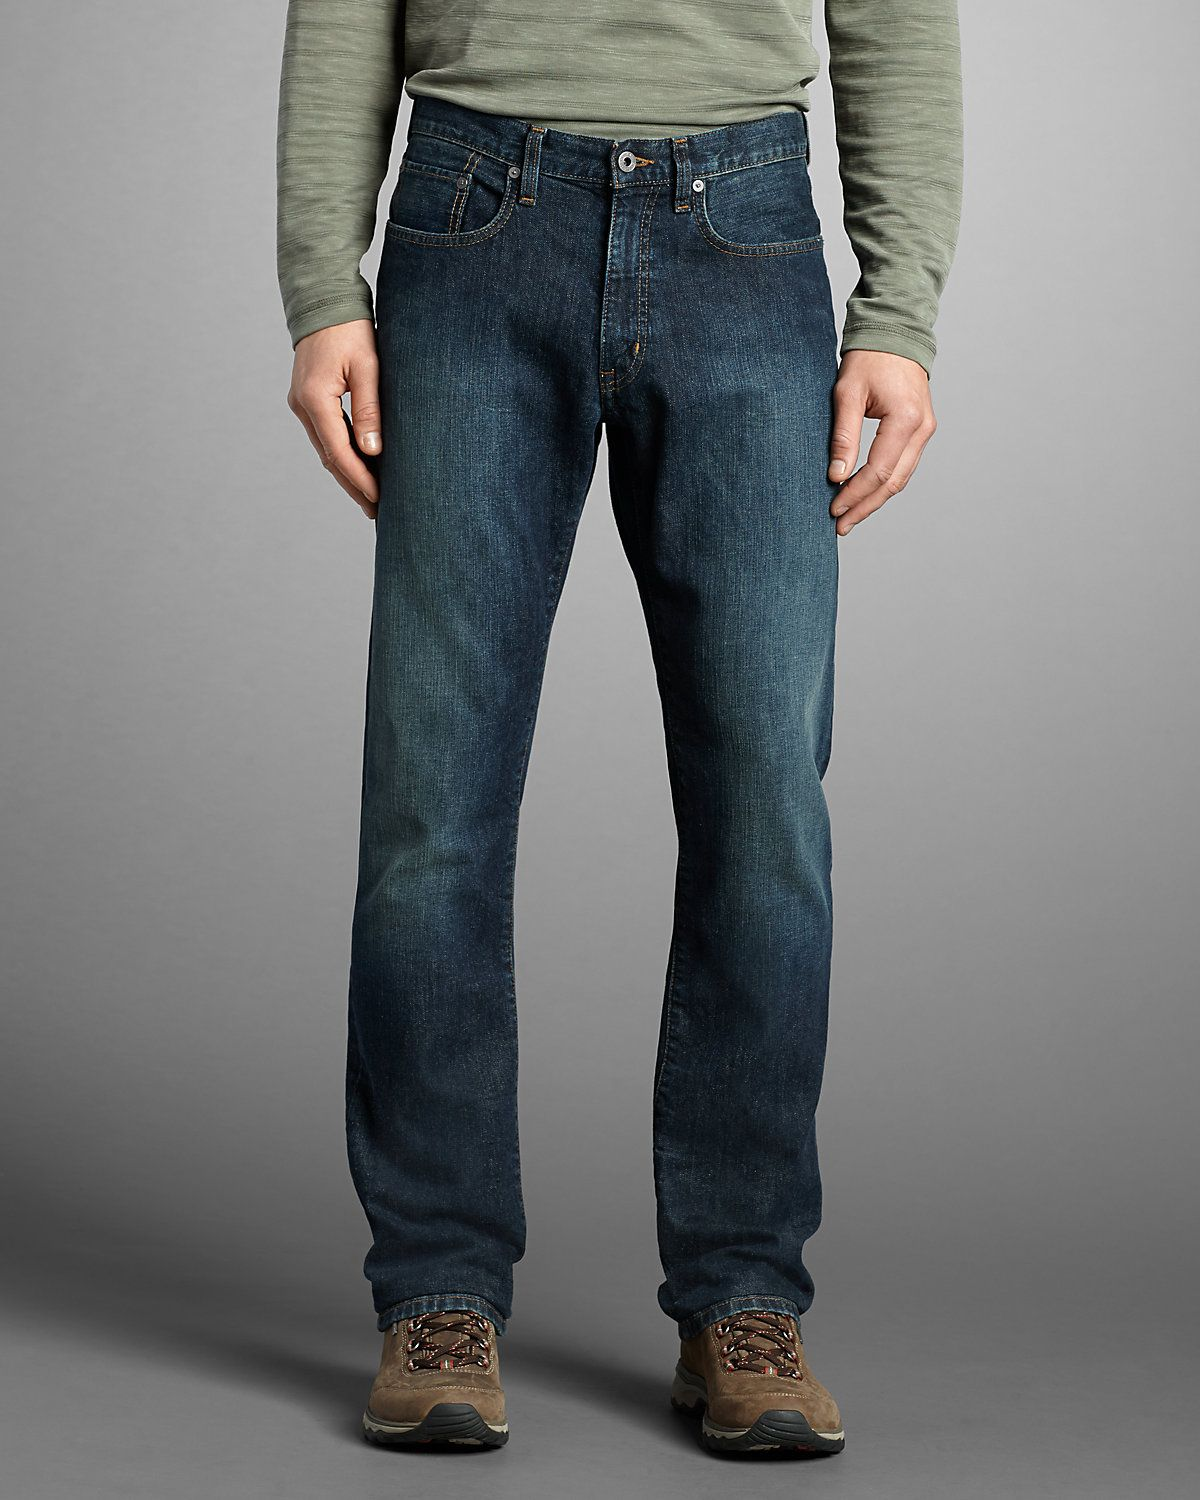 e53a4ee6b355bb Men's Flex Jeans - Straight Fit | | Rugged to classy | Jeans, Jeans ...